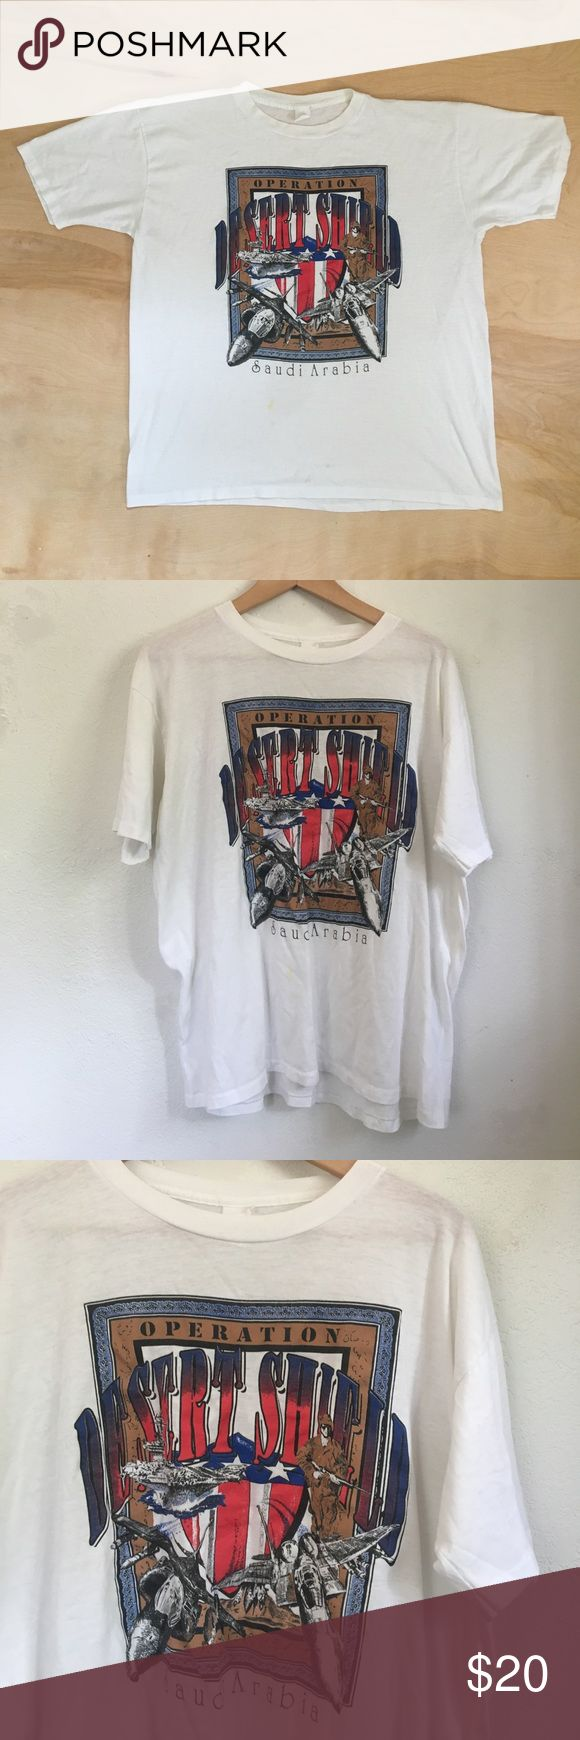 Vintage Operation Desert Shield Saudi Arabia Shirt Faded tag - Extremely thin fabric - A few stains (shown in 4th photo) - In Rad vintage condition - Recommended size: Large - Shoulder to shoulder: 21 in // Length: 26 in Vintage Shirts Tees - Short Sleeve